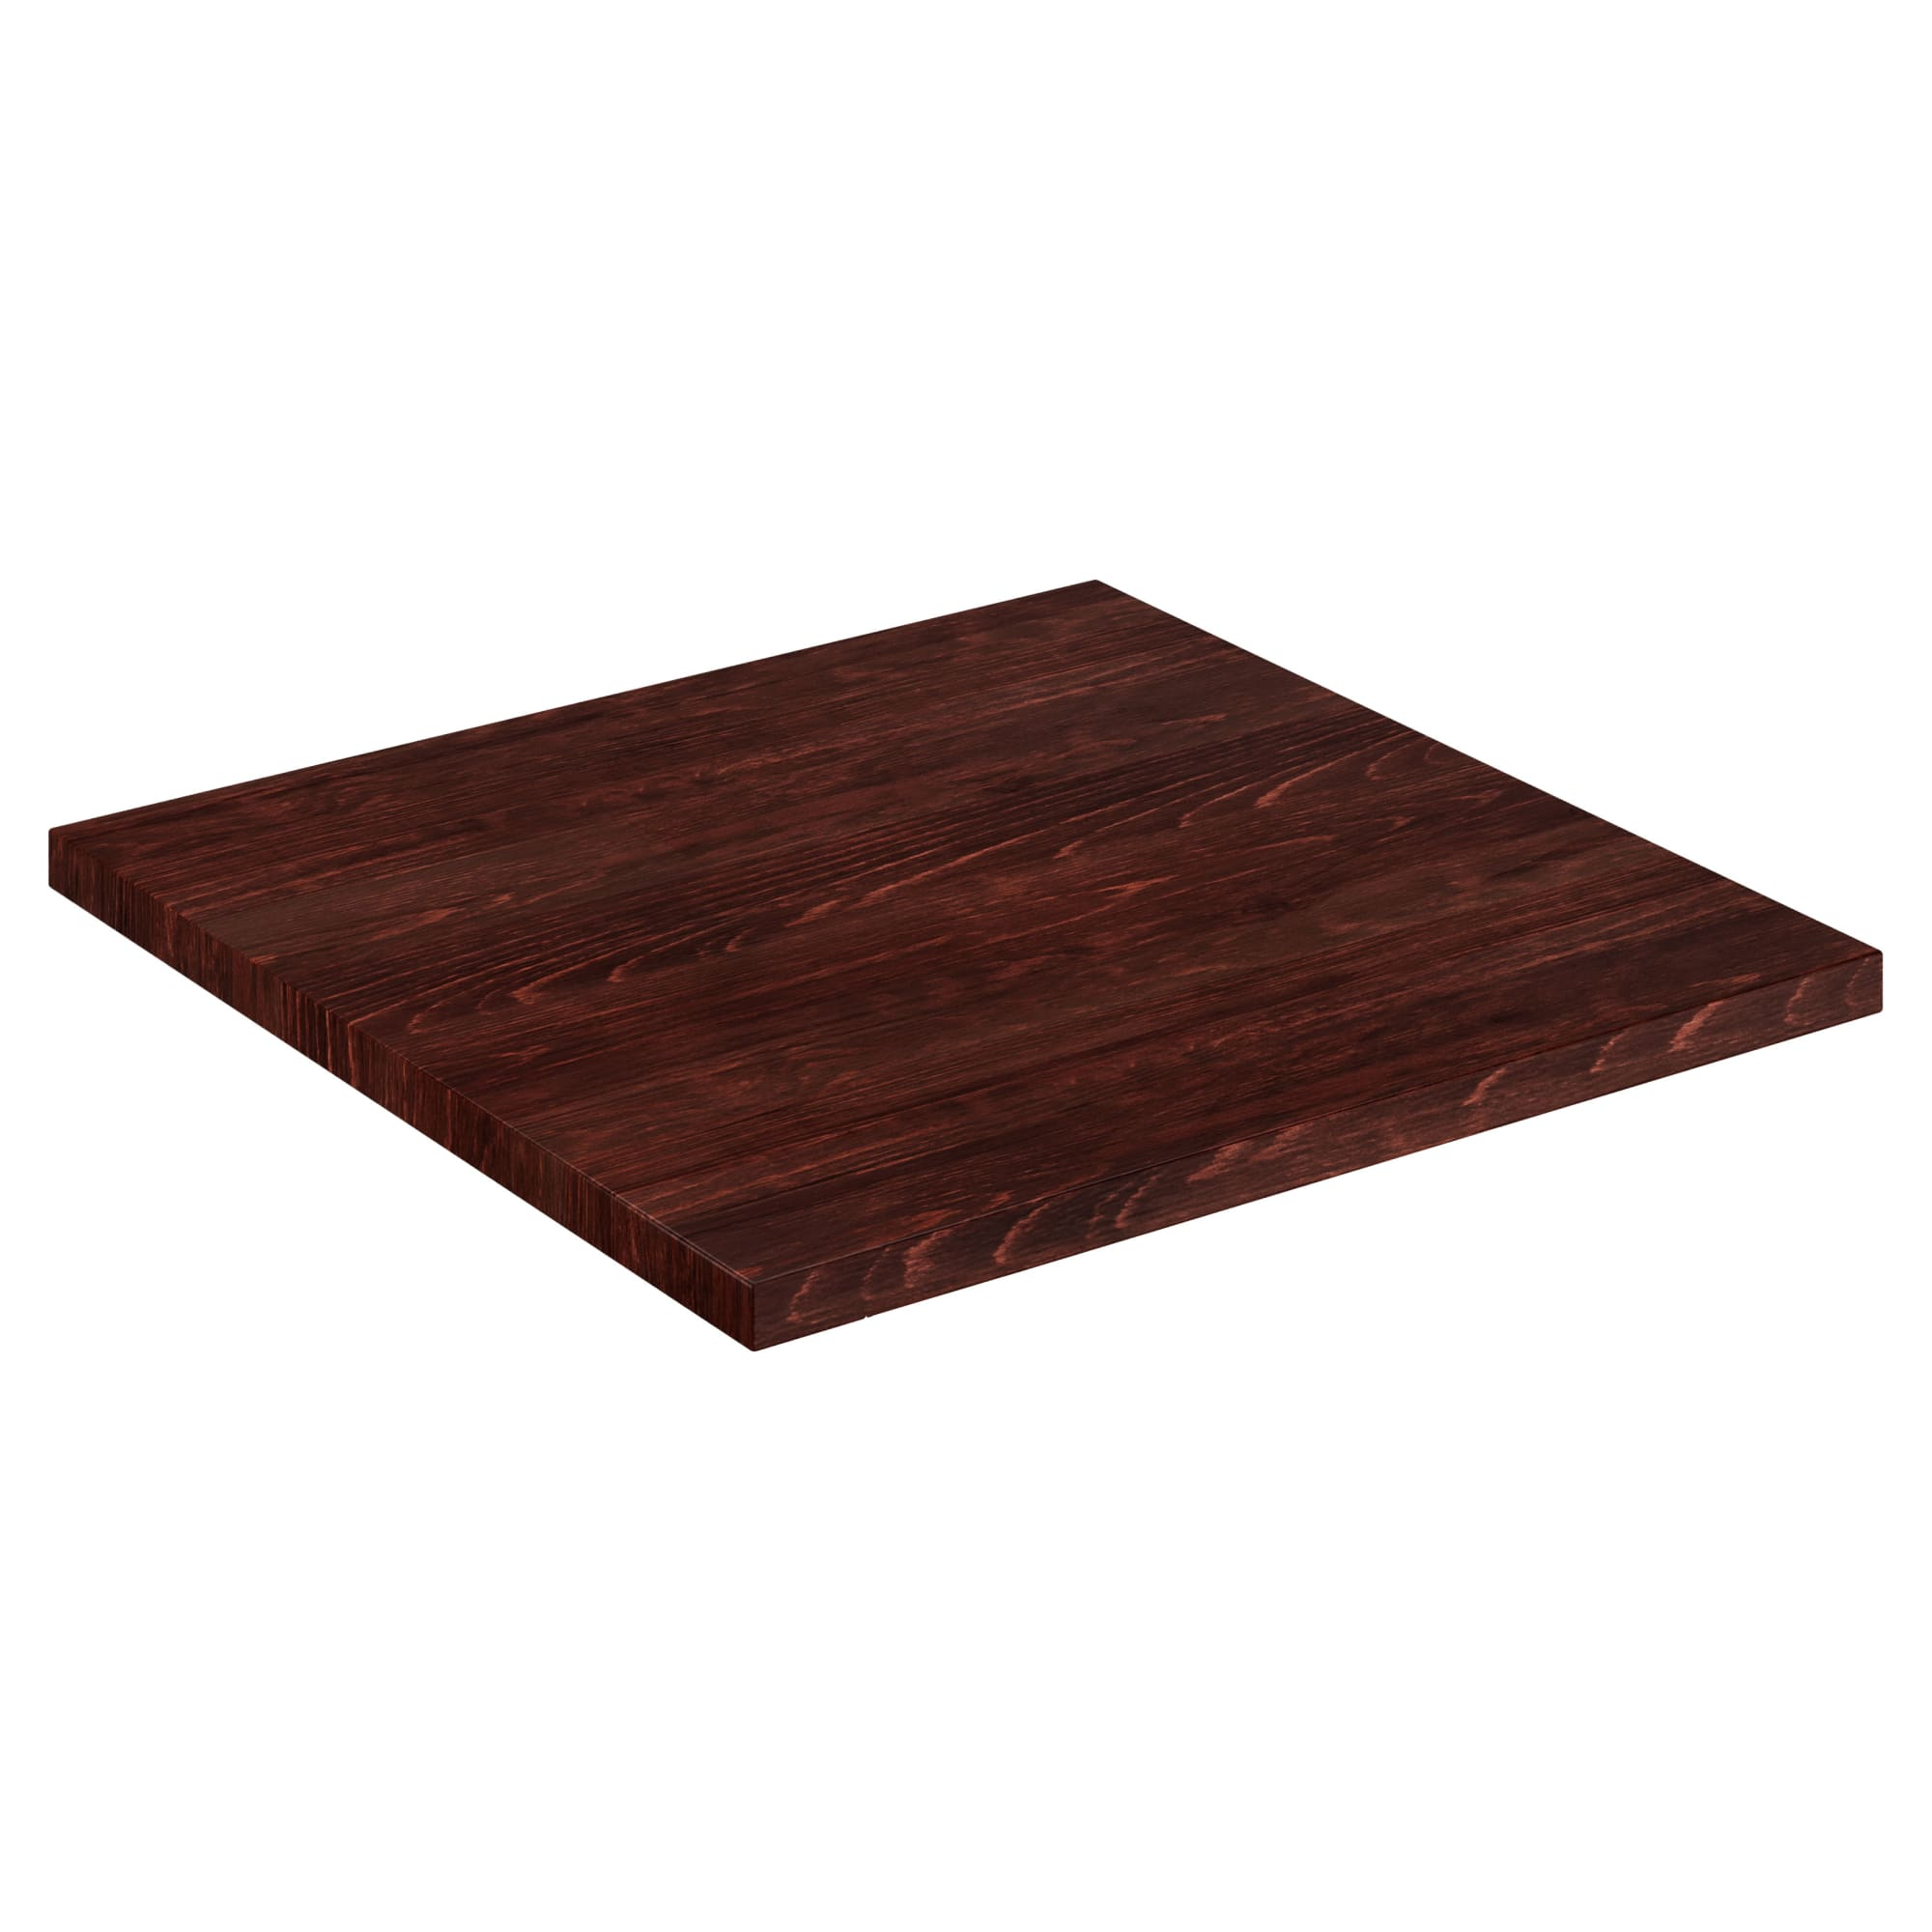 Premium Solid Wood Plank Table Top with Premium Solid Wood Plank Table Top